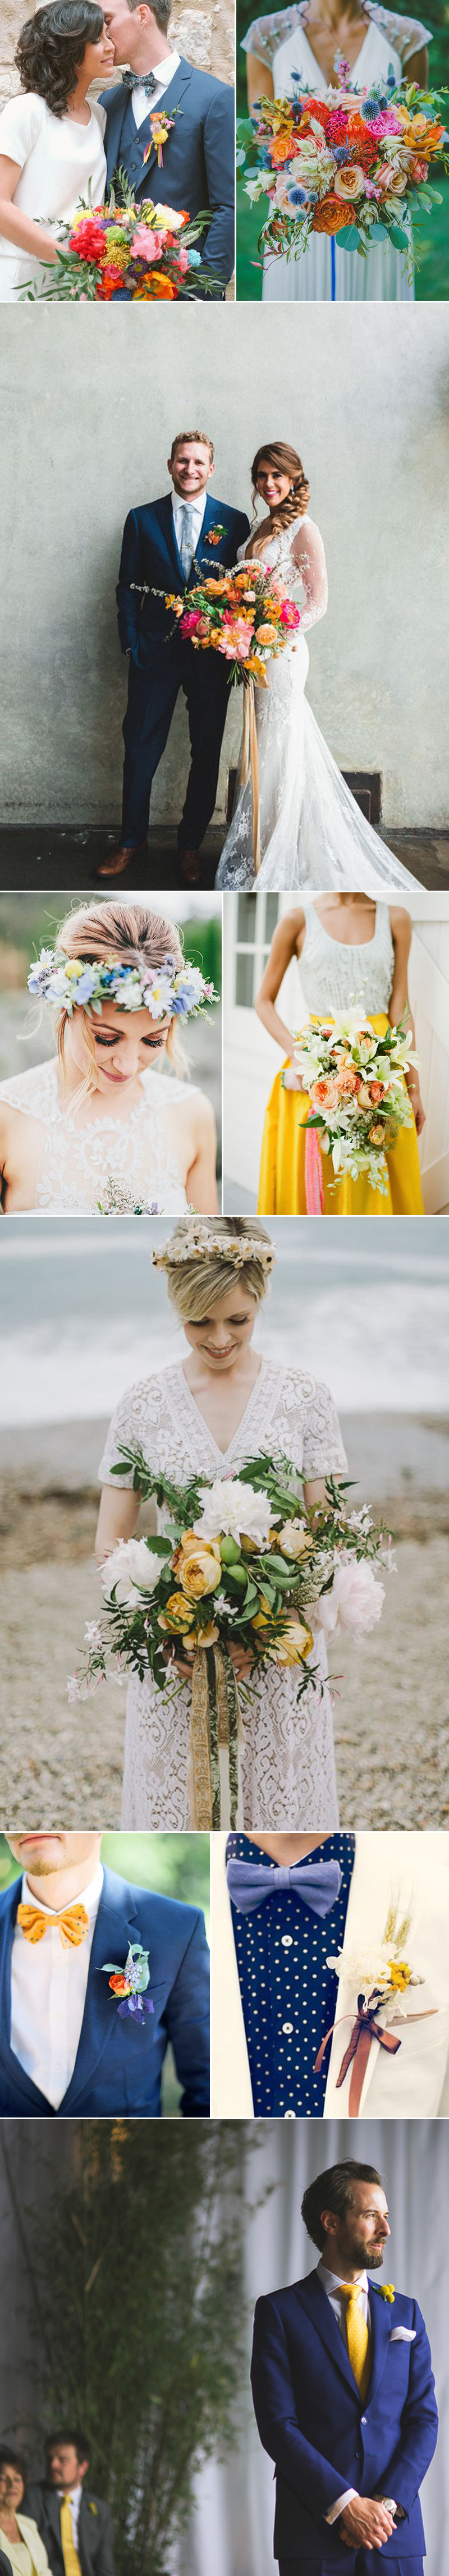 Spring Wedding Ideas in Yellows and Blues